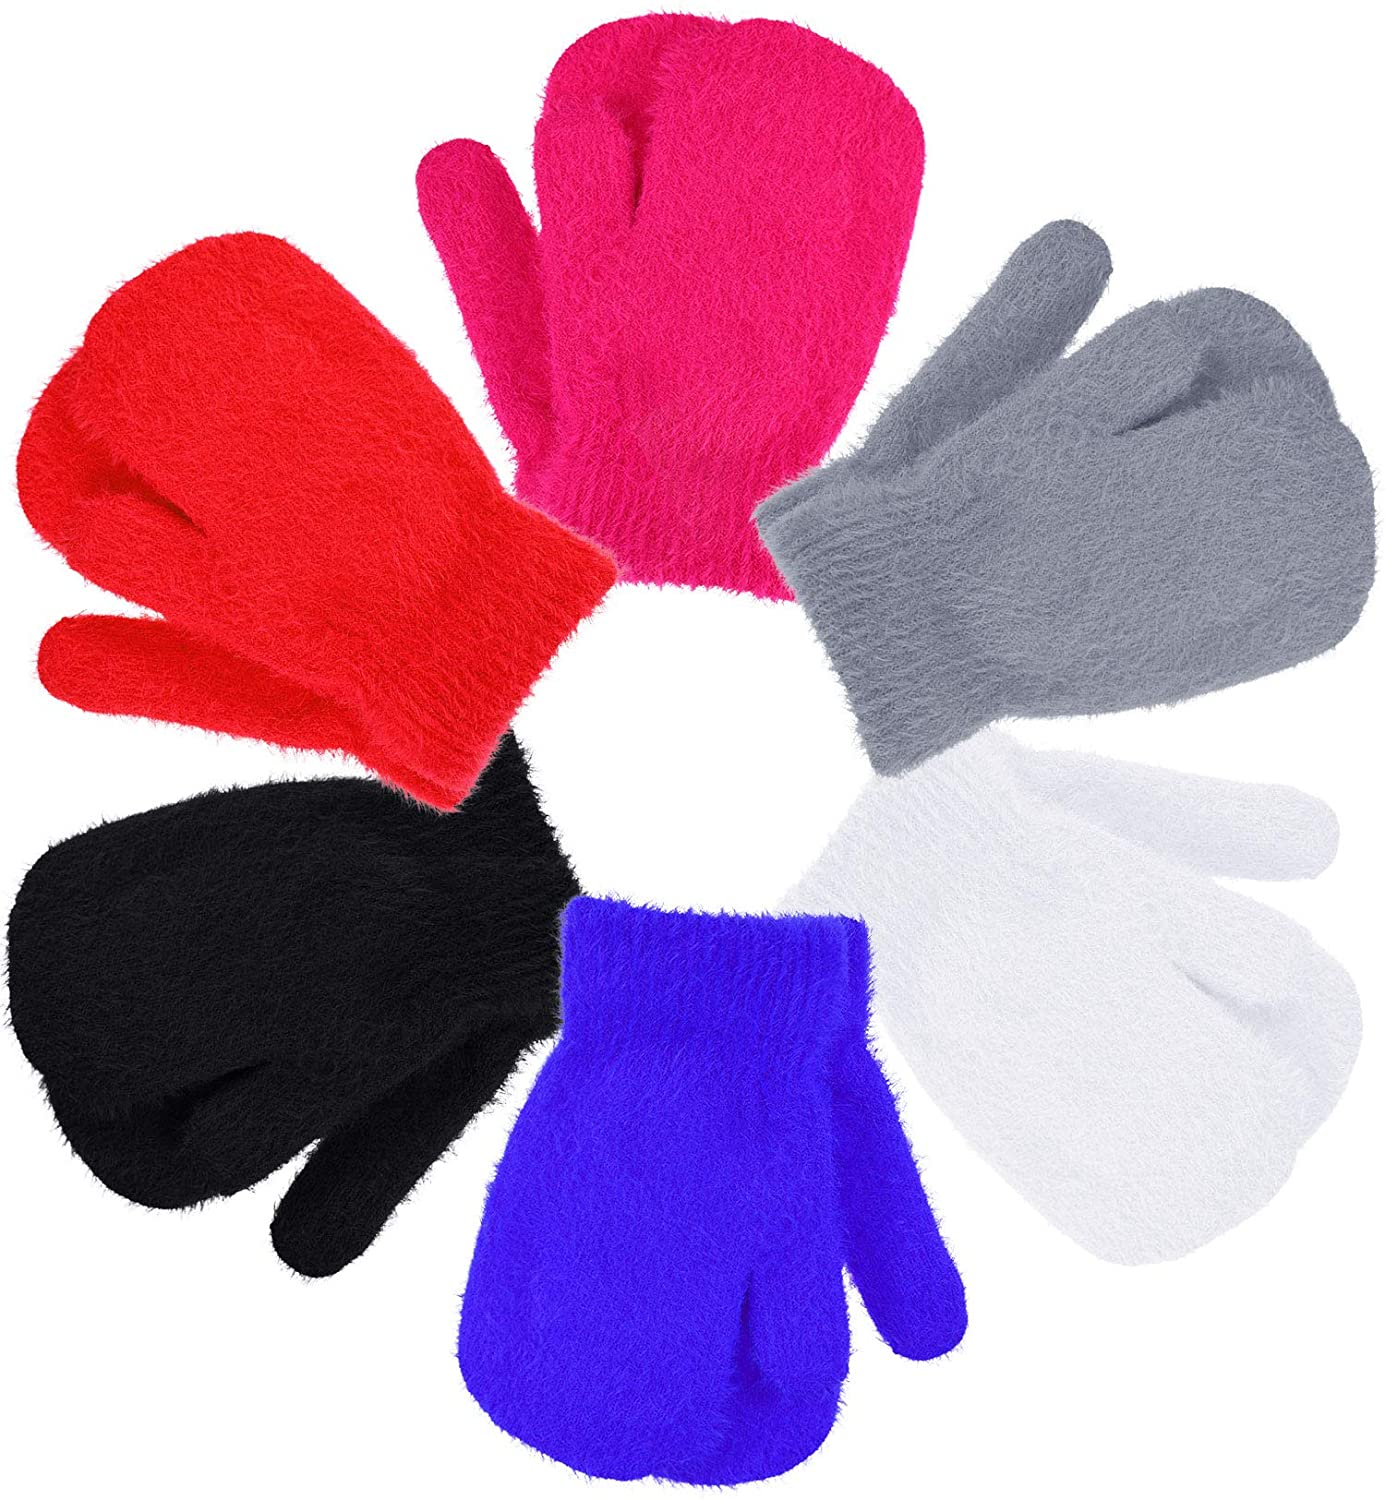 6 Pairs Kids Magic Stretch Mittens Warm Fluffy Knit Mitten Gloves for Boys and Girls Winter Supplies